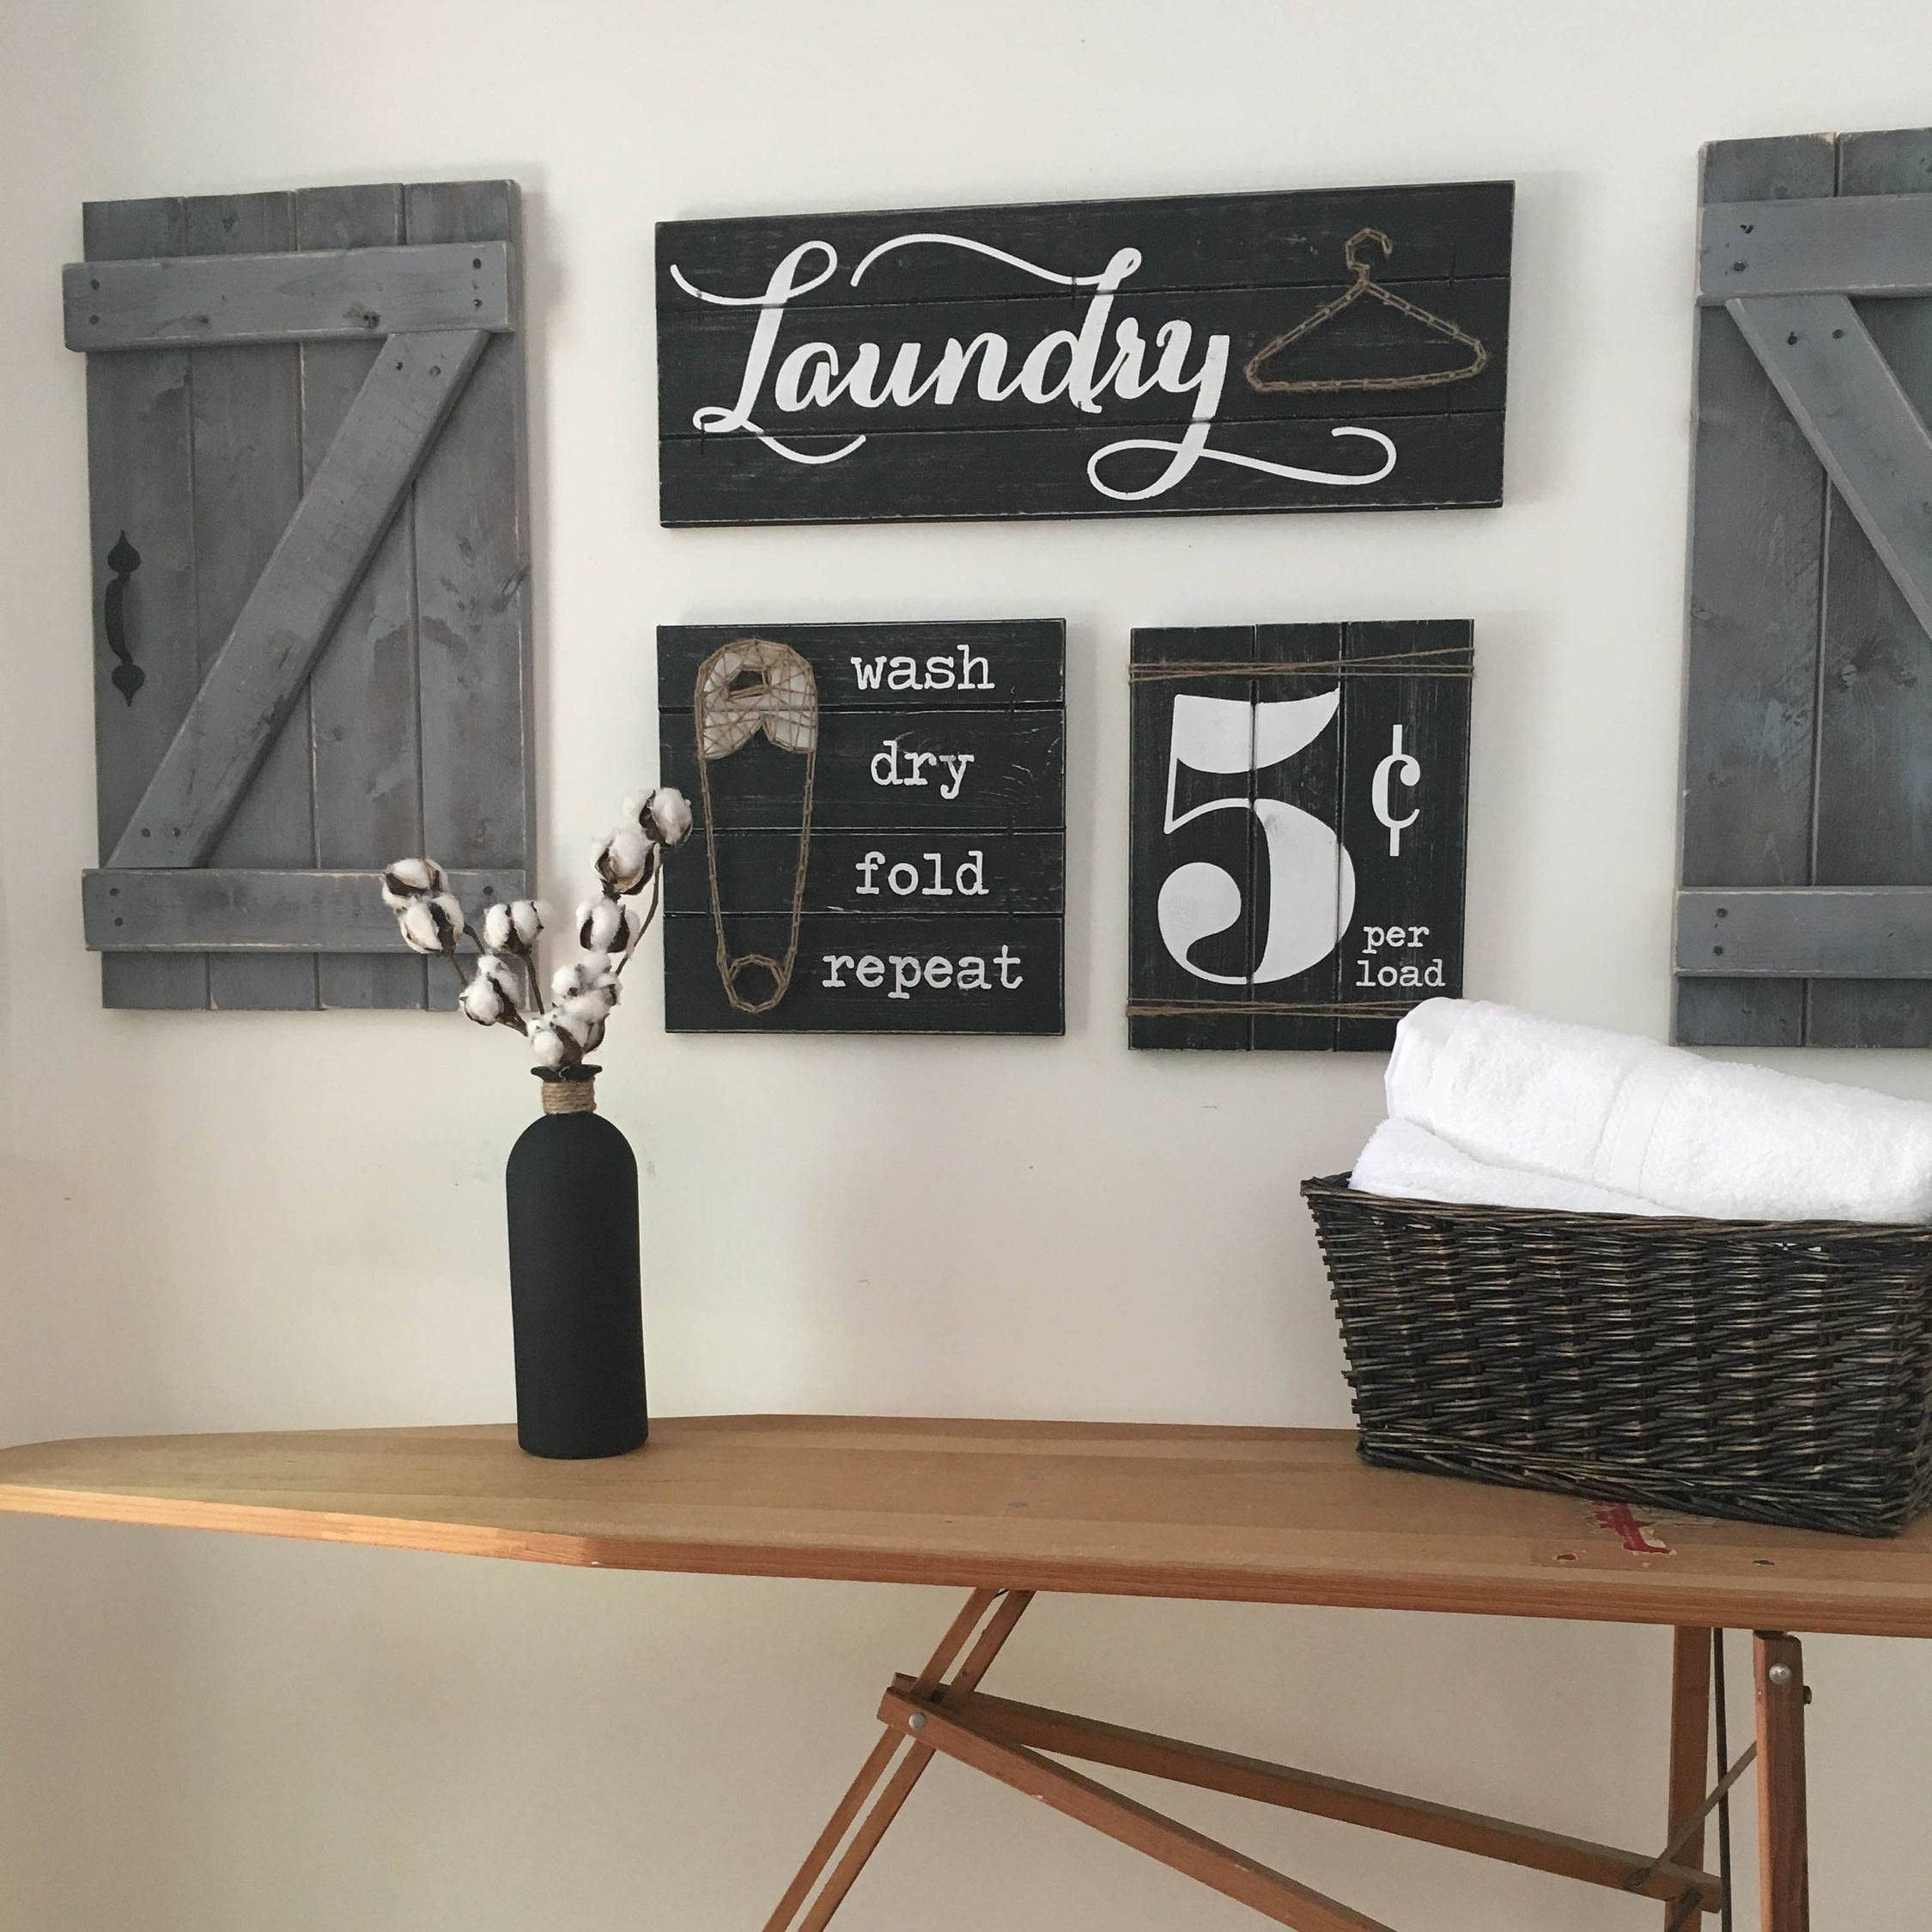 Laundry Room Signs Set Of 5 Laundry Room Decor Laundry Room Decor Signs Rustic Laundry Room Decor Laundry Sign Wood Laundry Sign